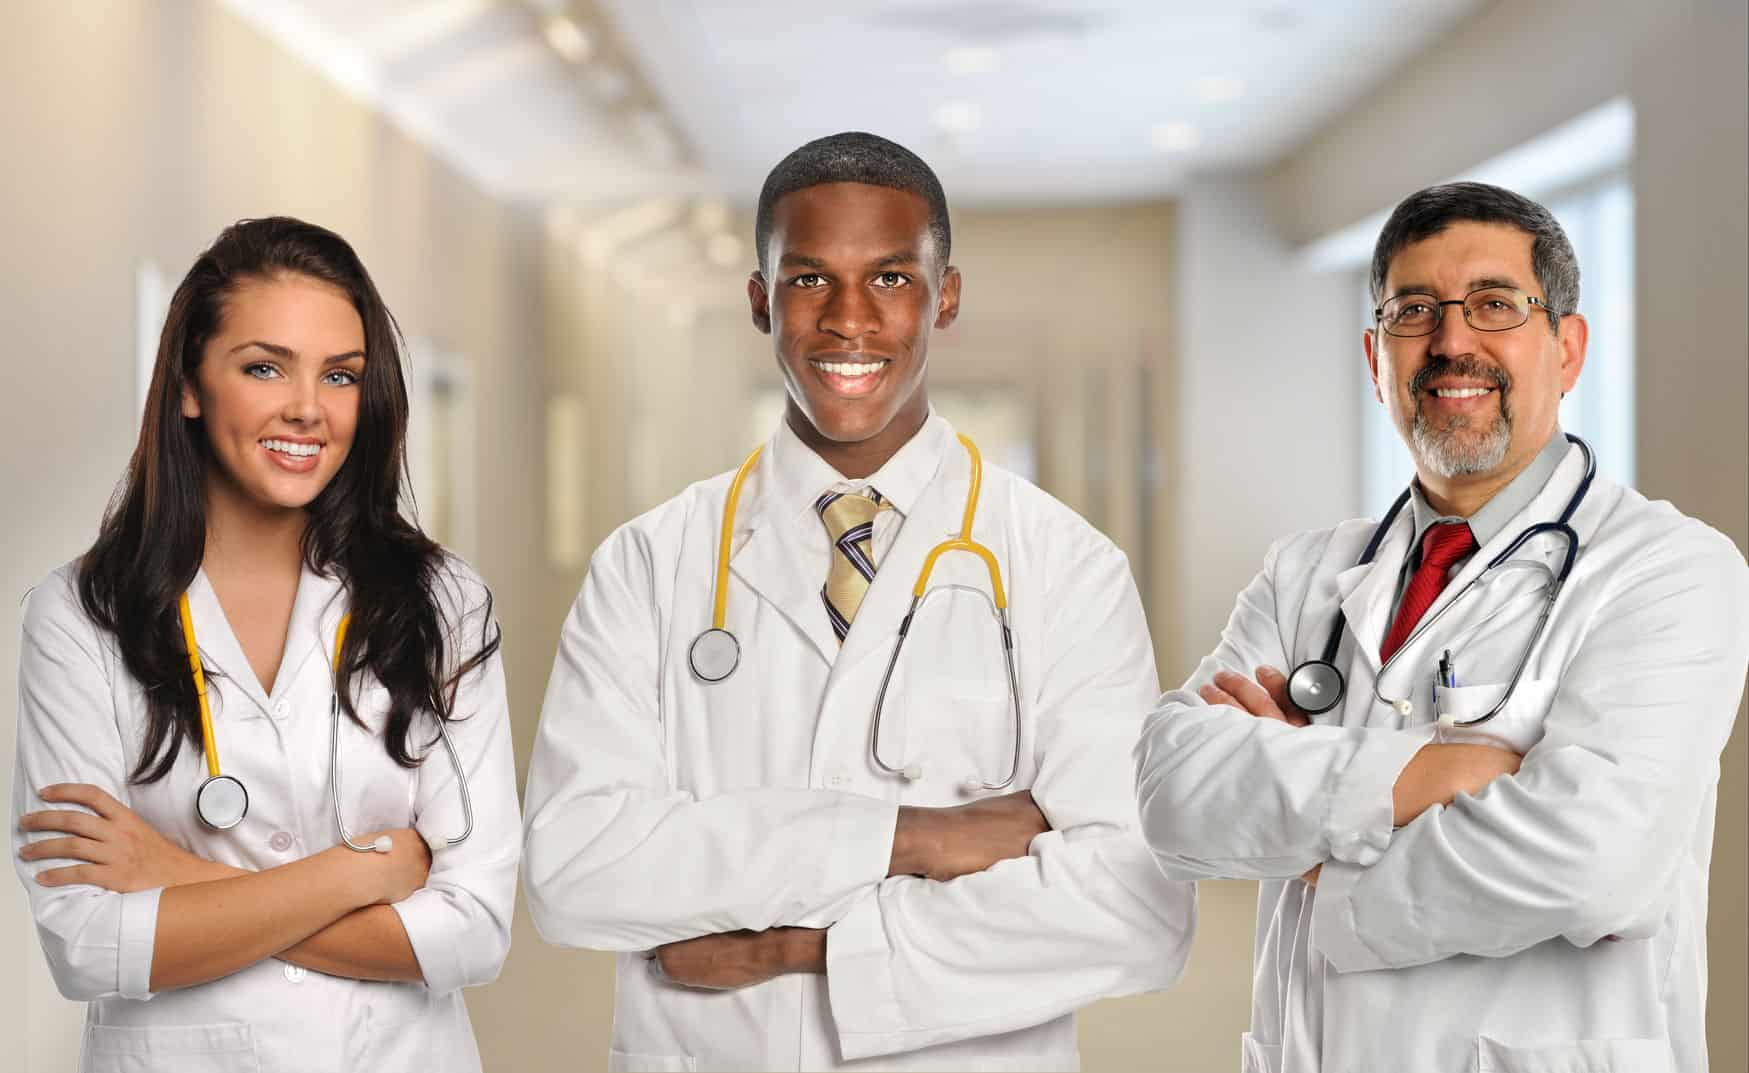 Physician Employment Growth in 2019